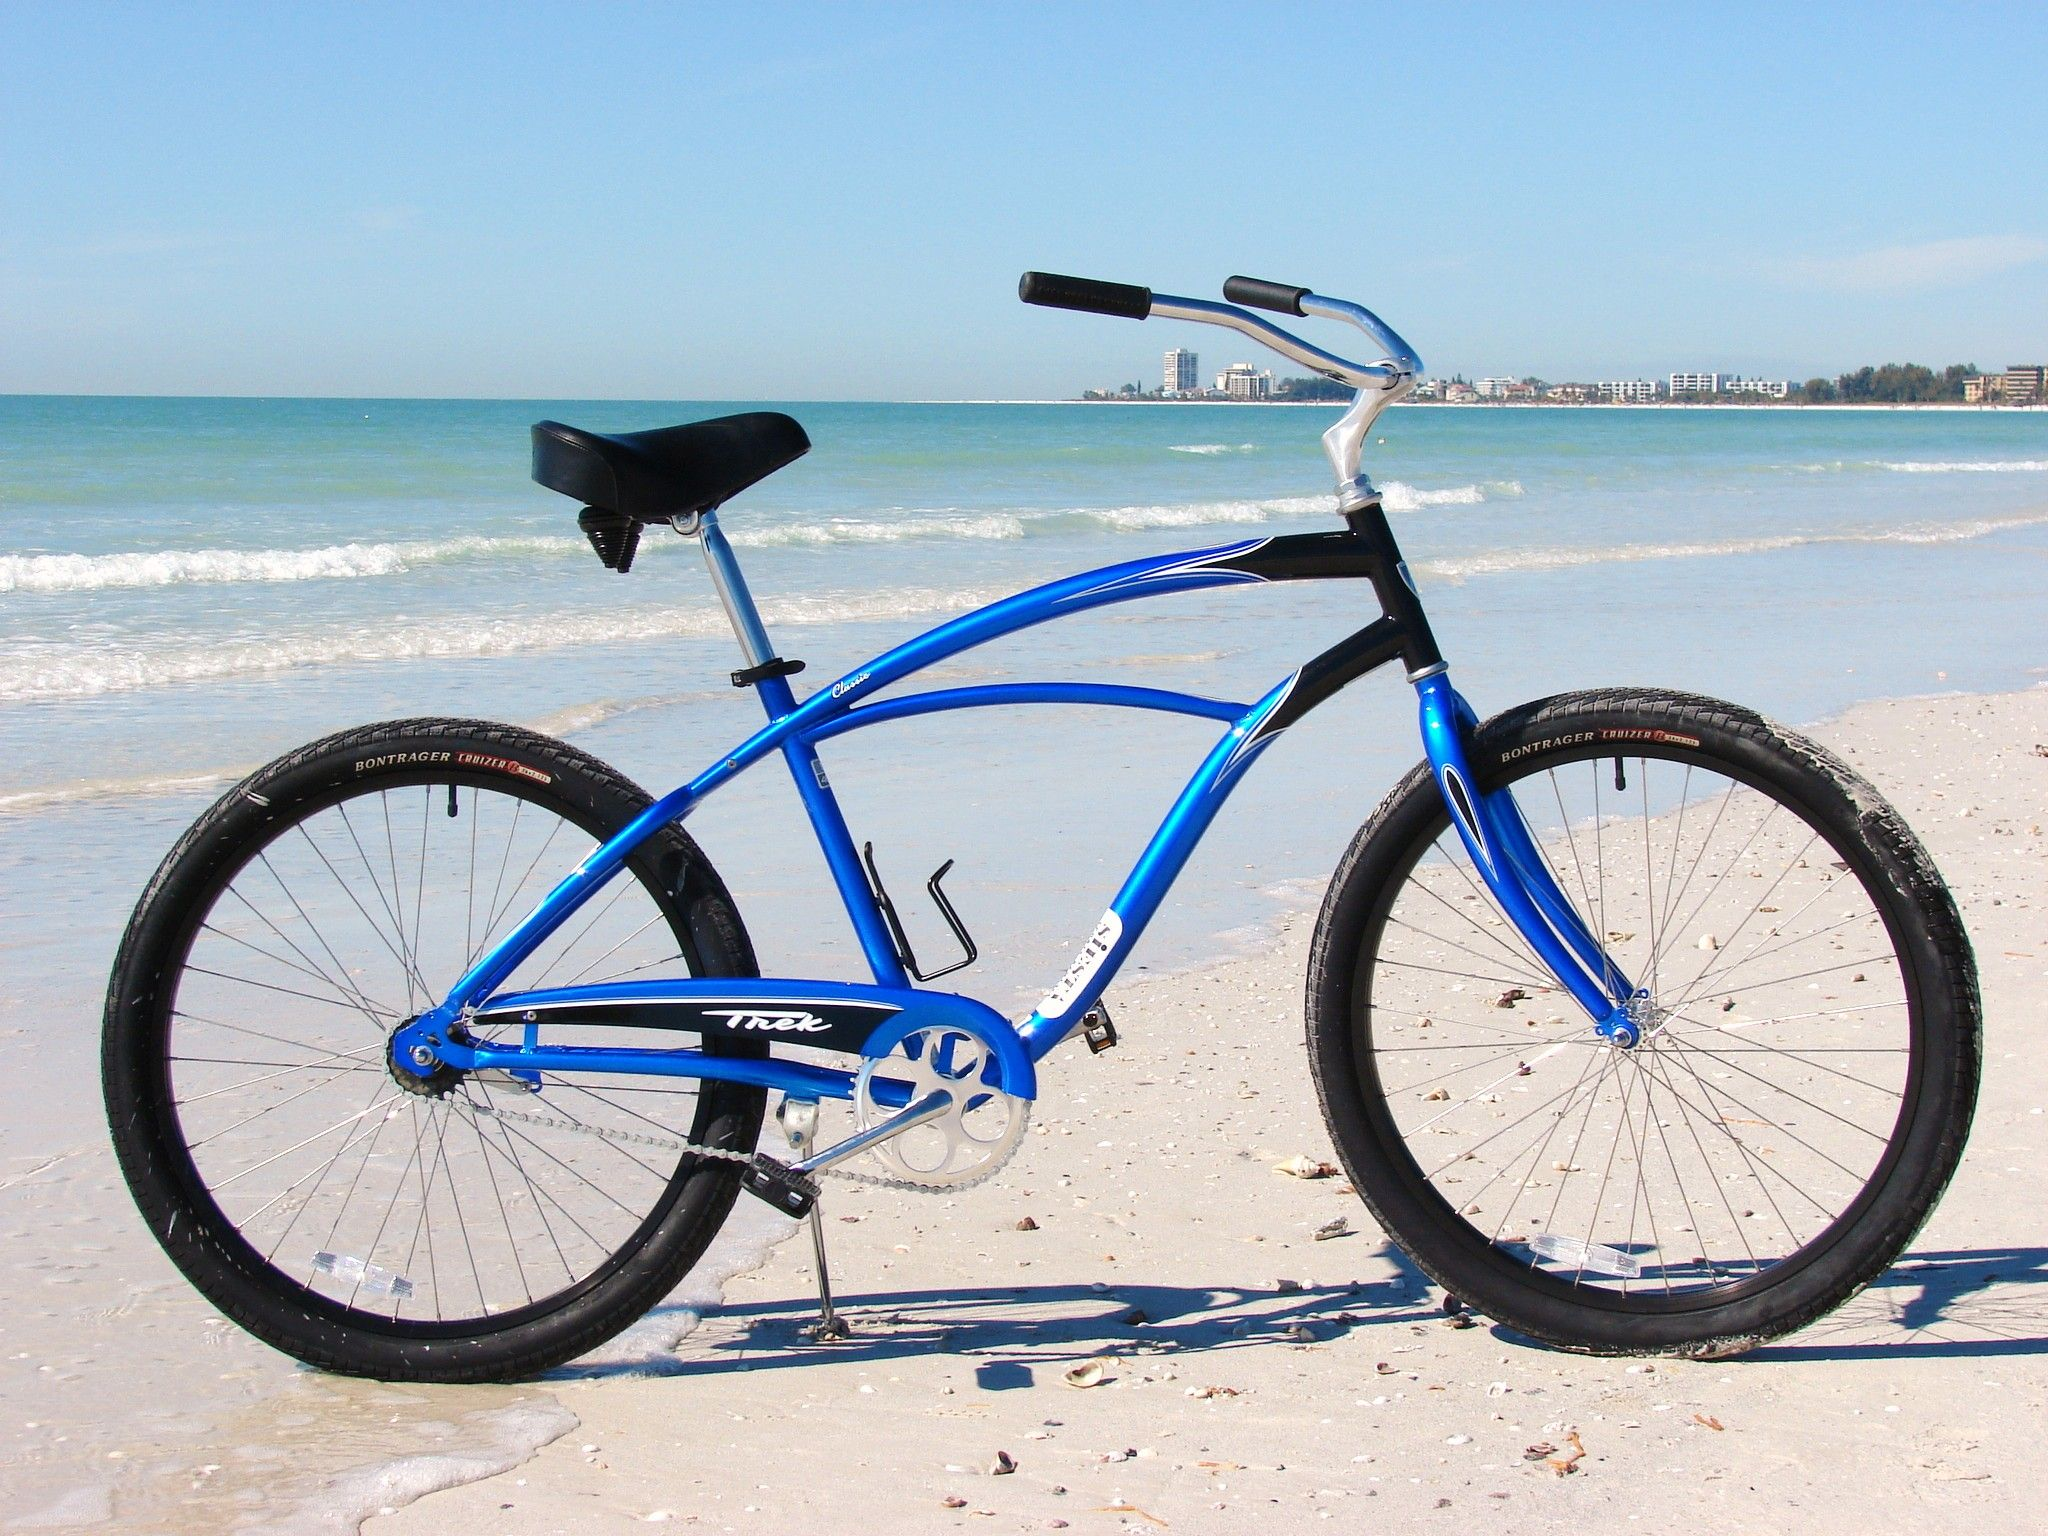 Rent A Beach Cruiser Bicycle From Siesta Sports Rentals And Bike